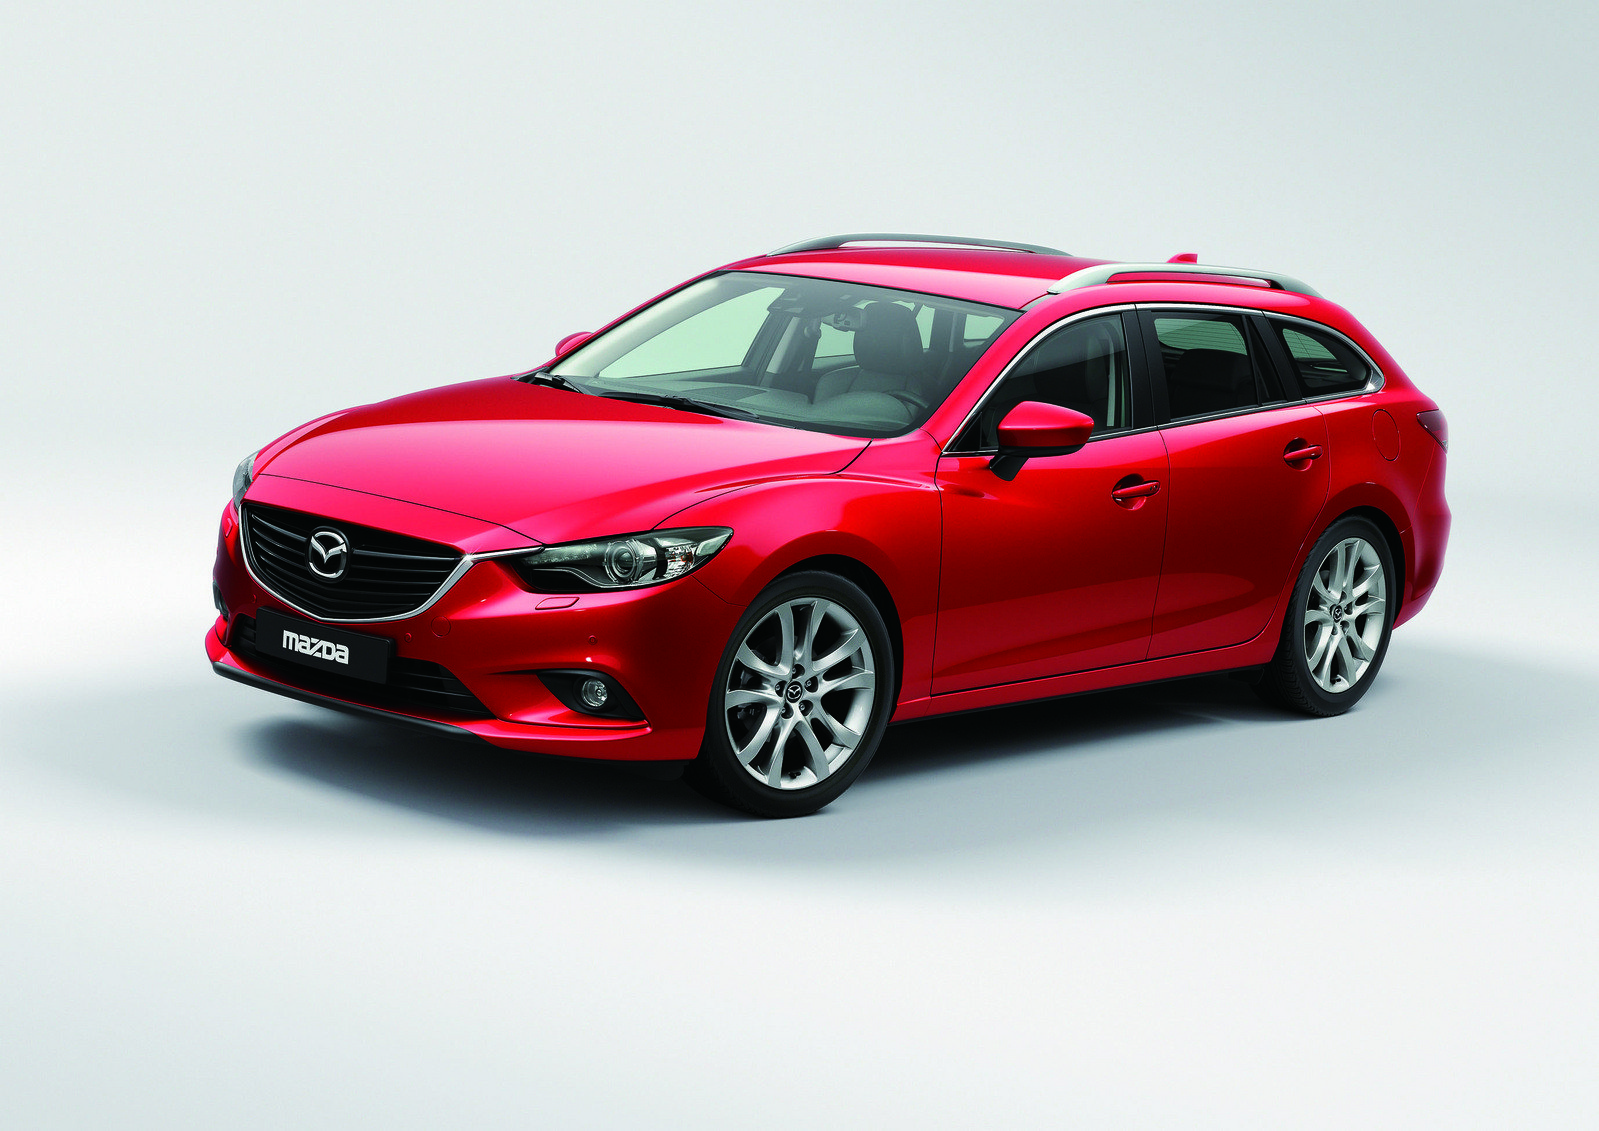 2013 mazda 6 wagon review top speed. Black Bedroom Furniture Sets. Home Design Ideas